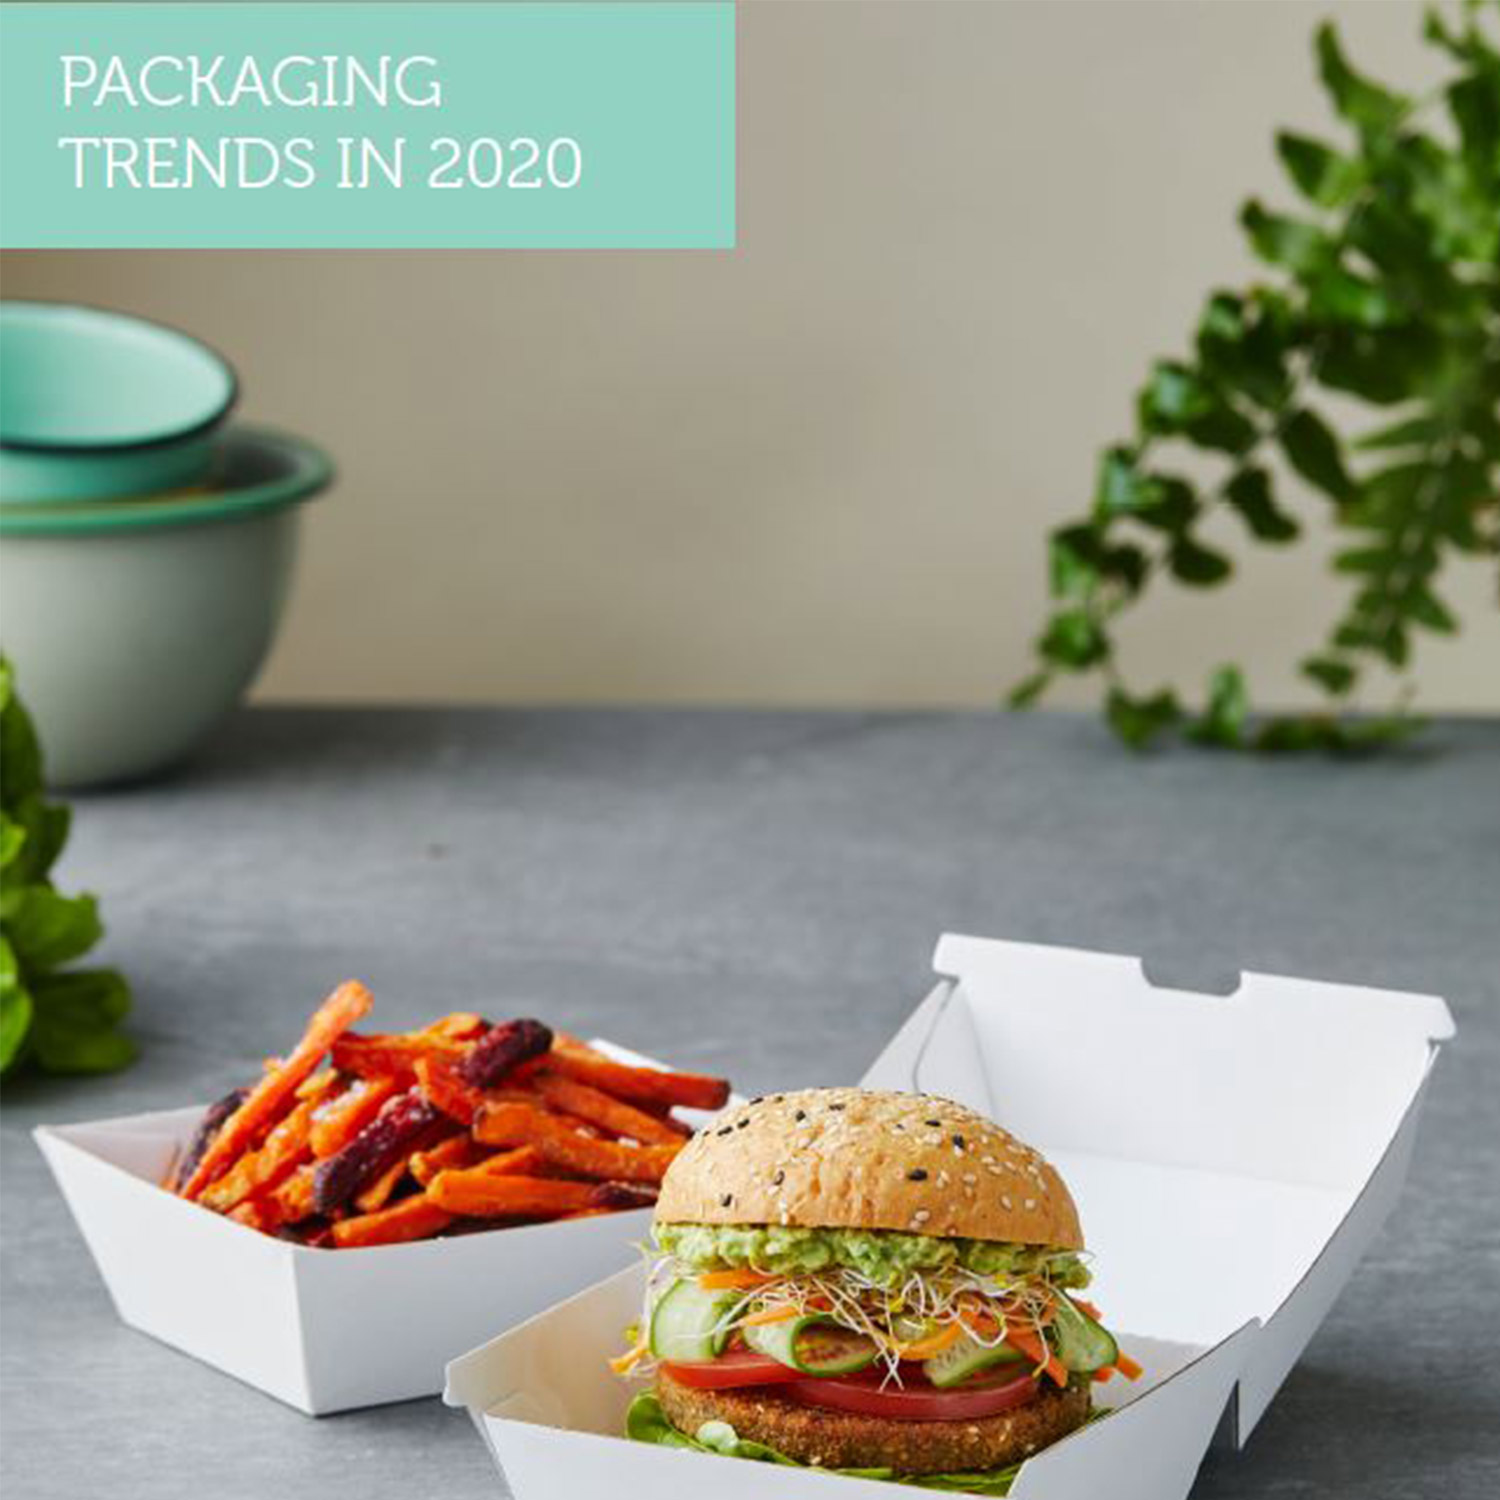 Packaging Trends in 2020